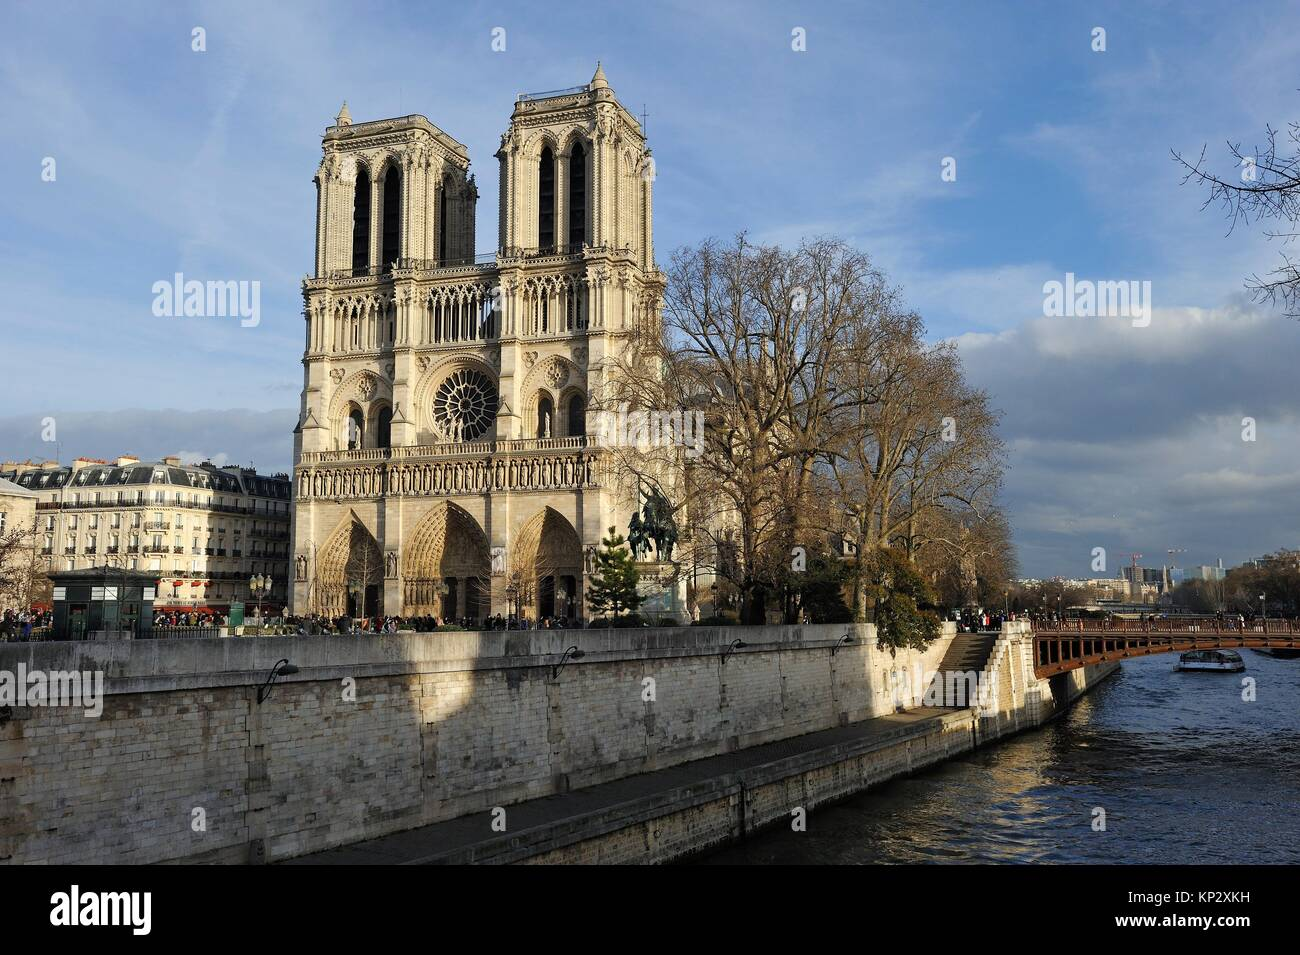 Notre-Dame Cathedral and Seine River, Paris, France, Europe. - Stock Image